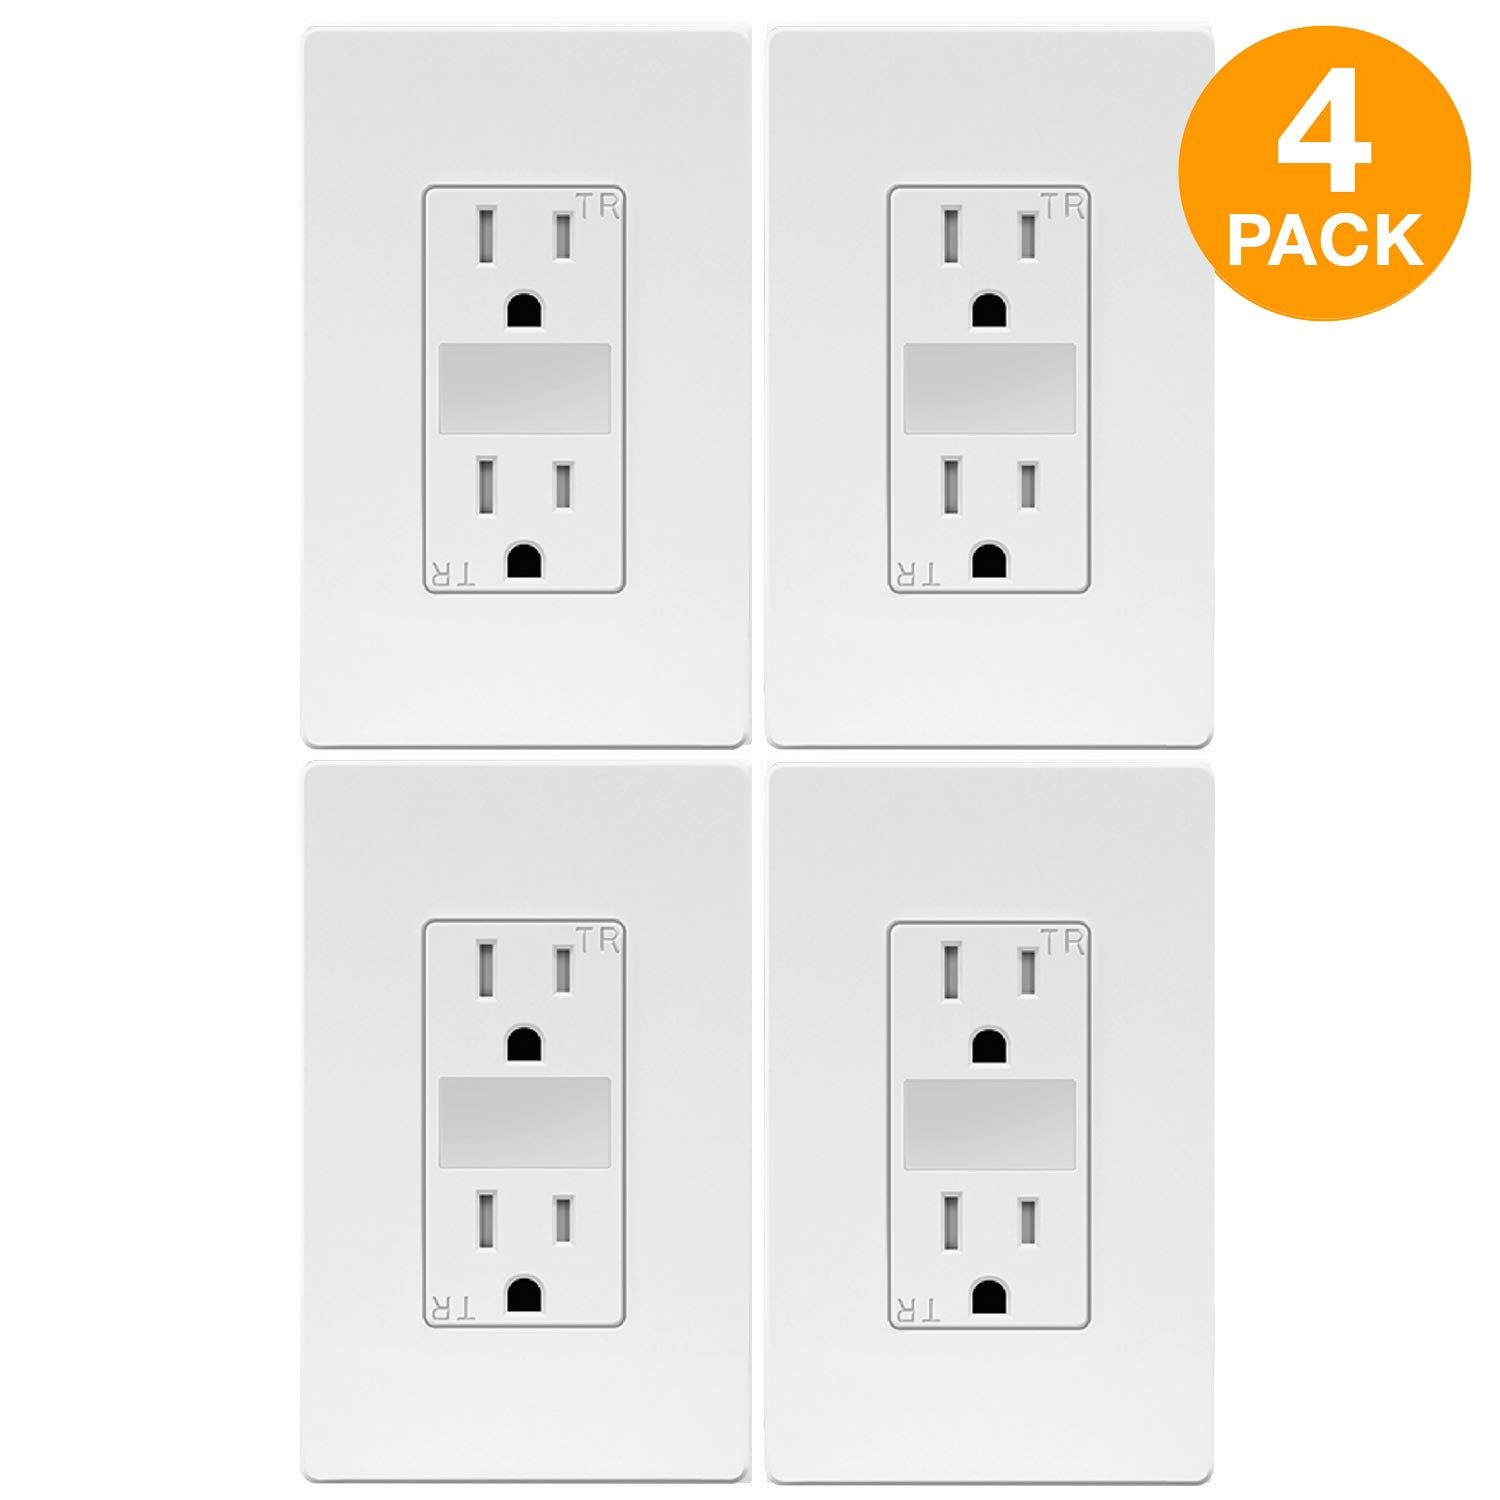 TOPGREENER LED Guide Light Receptacle, Automatic Night/Day Sensor Decorator Duplex Outlet Combination, 125VAC/15A Tamper-Resistant Receptacle, White Screwless Wall Plate Included, TG215TRGL (4 Pack)